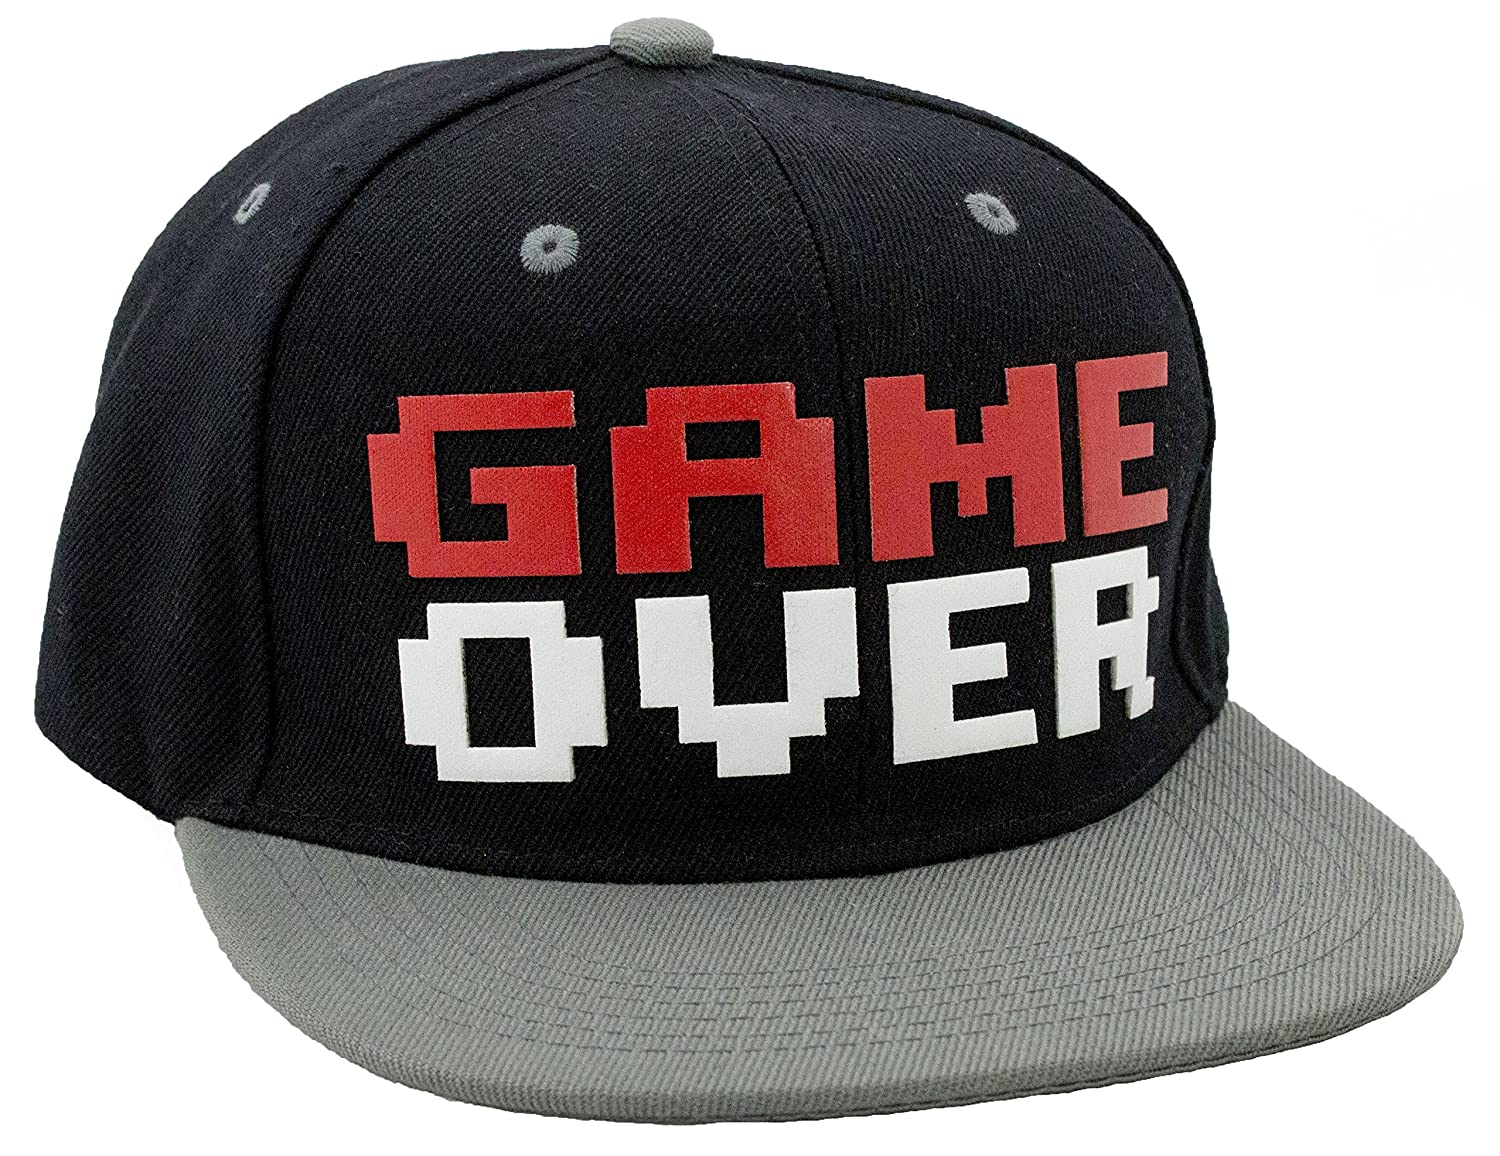 4ccea269667 N-Style Game Over Snapback Baseball Hat at Amazon Men s Clothing store